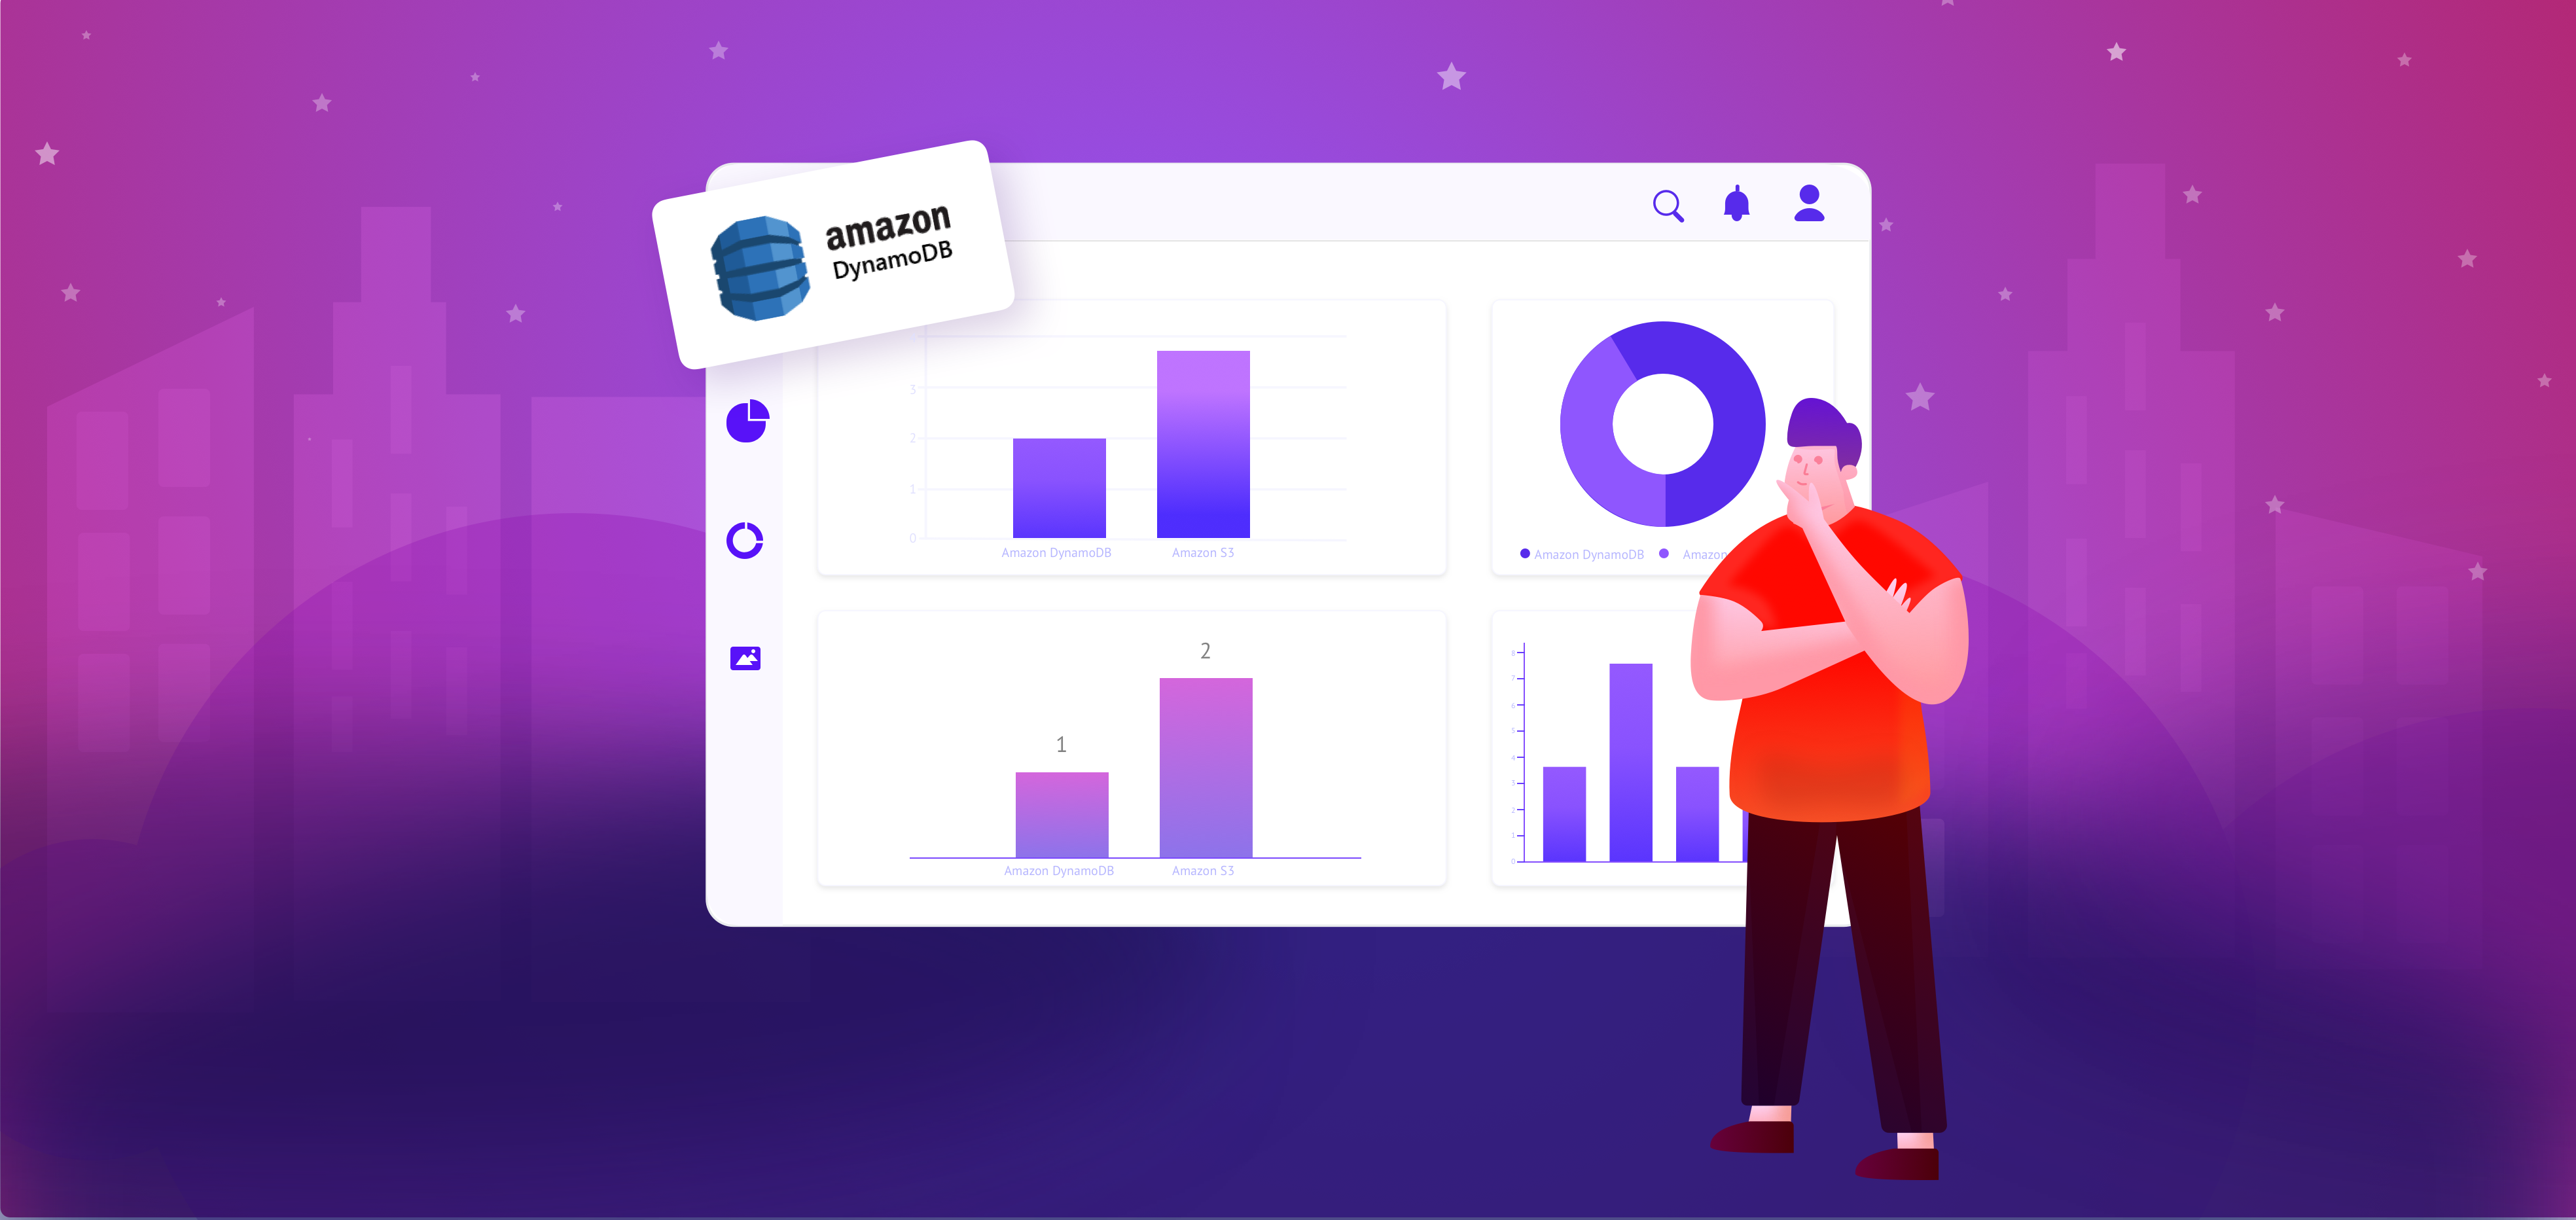 Explore Data Metrics Along With Benefits of DynamoDB